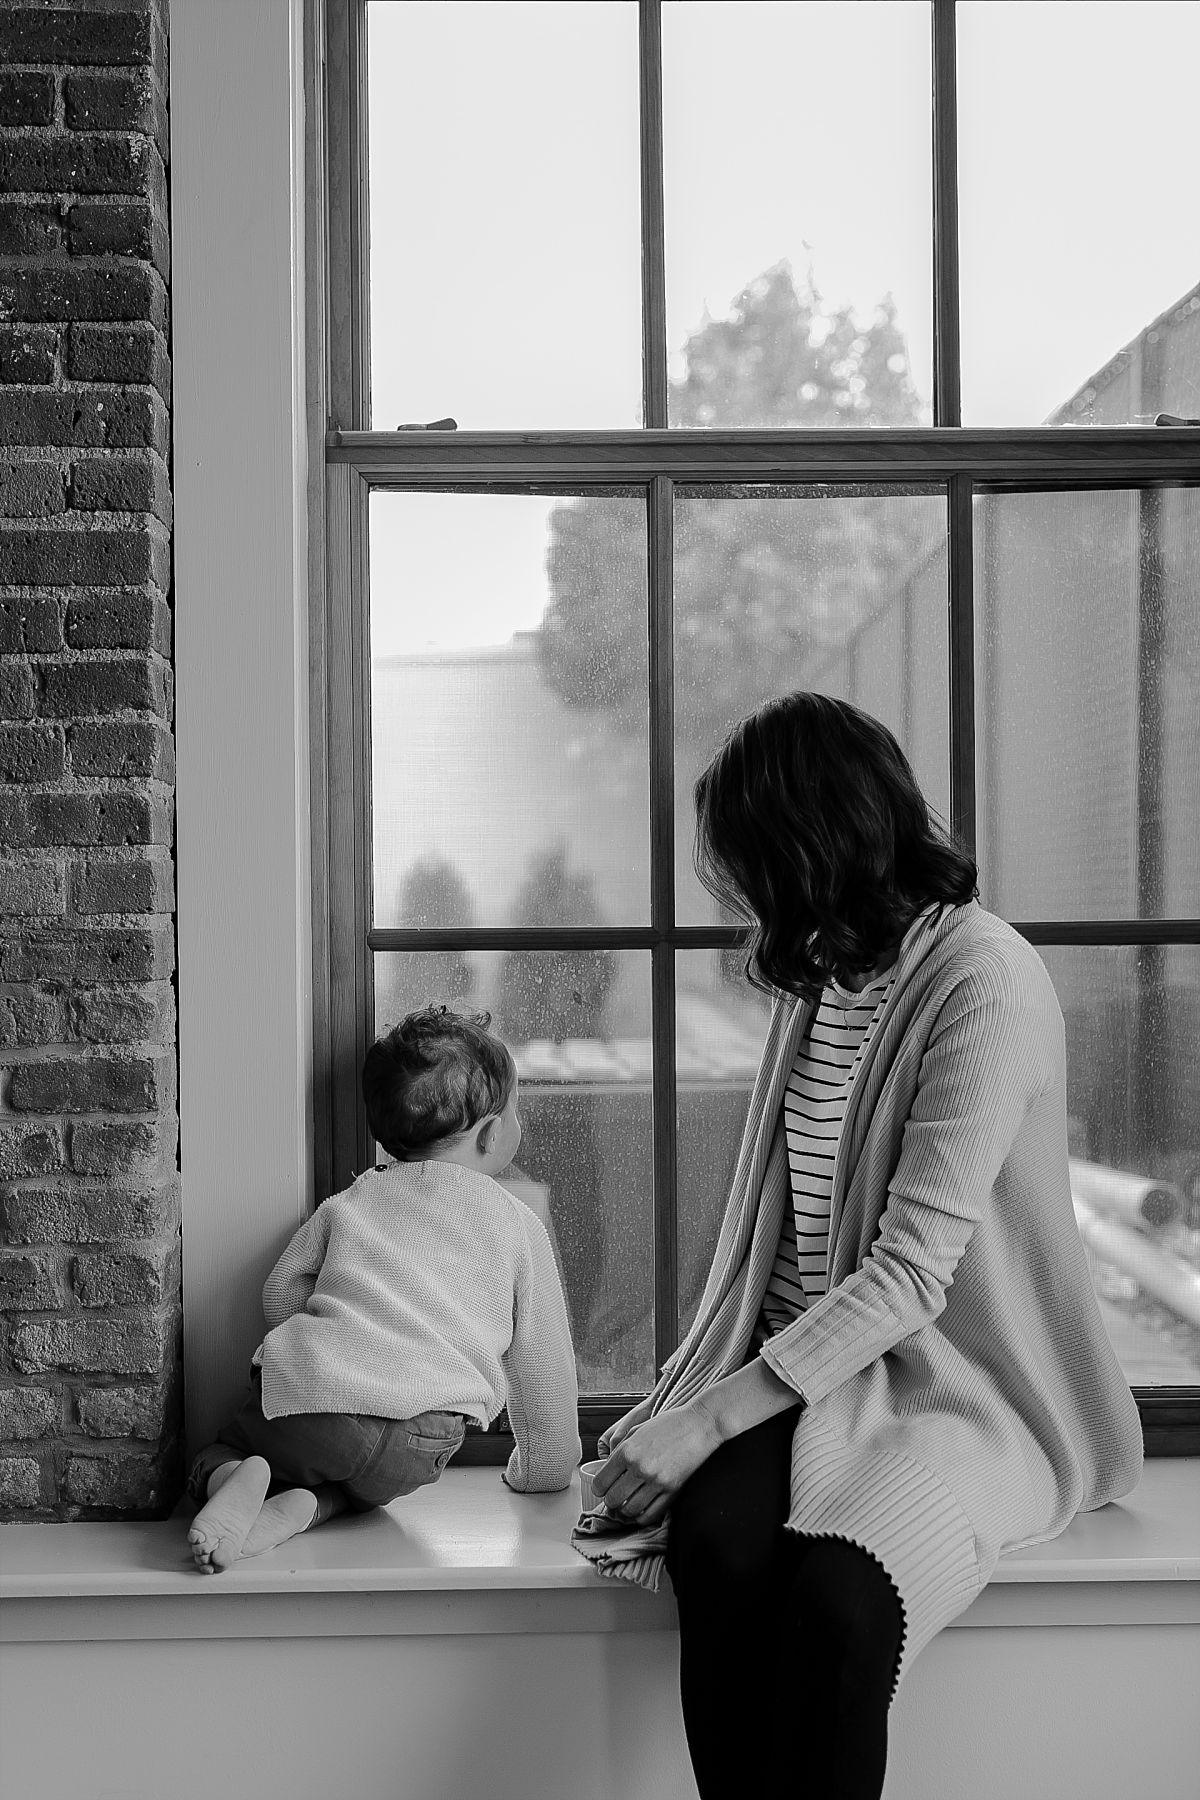 black and white image of mom and son looking out window to see train passing